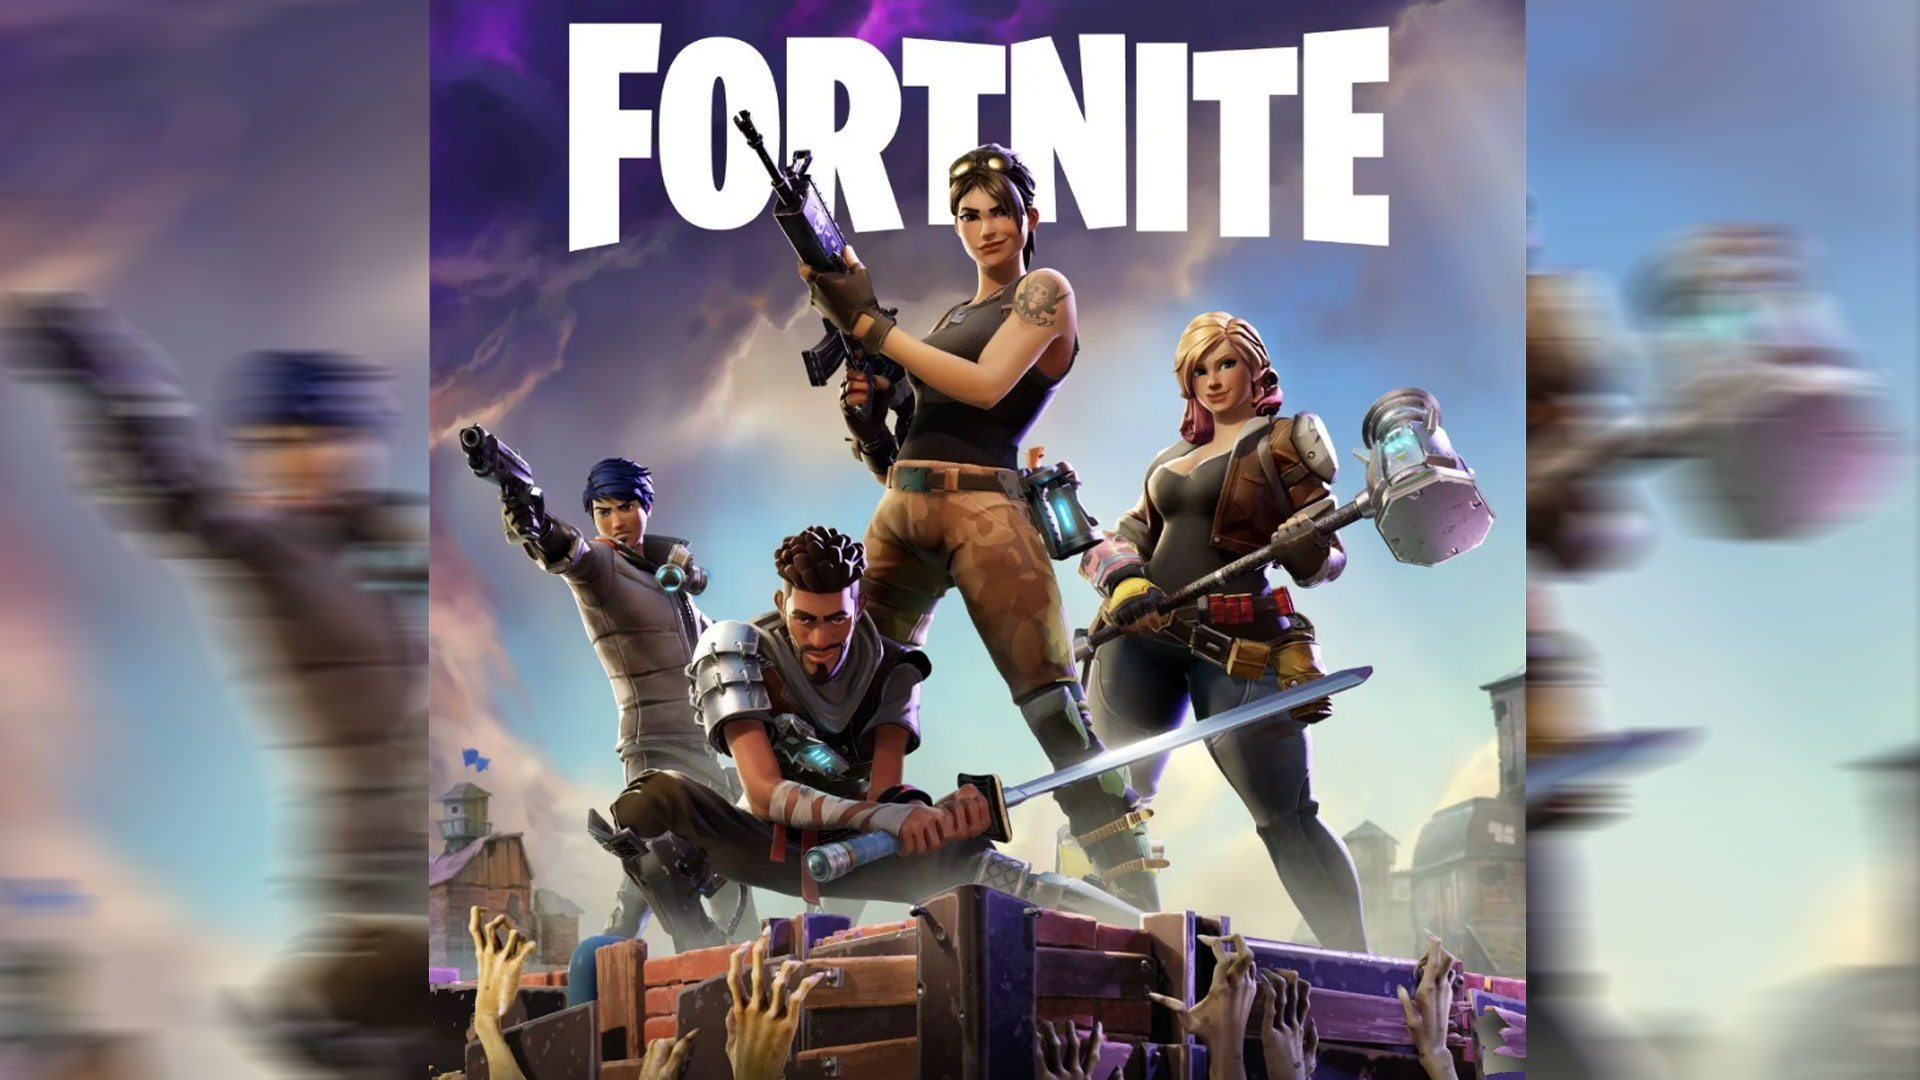 Fortnite - Epic Games - Xbox One, PlayStation 4,Macintosh,PC,Android,iPhone